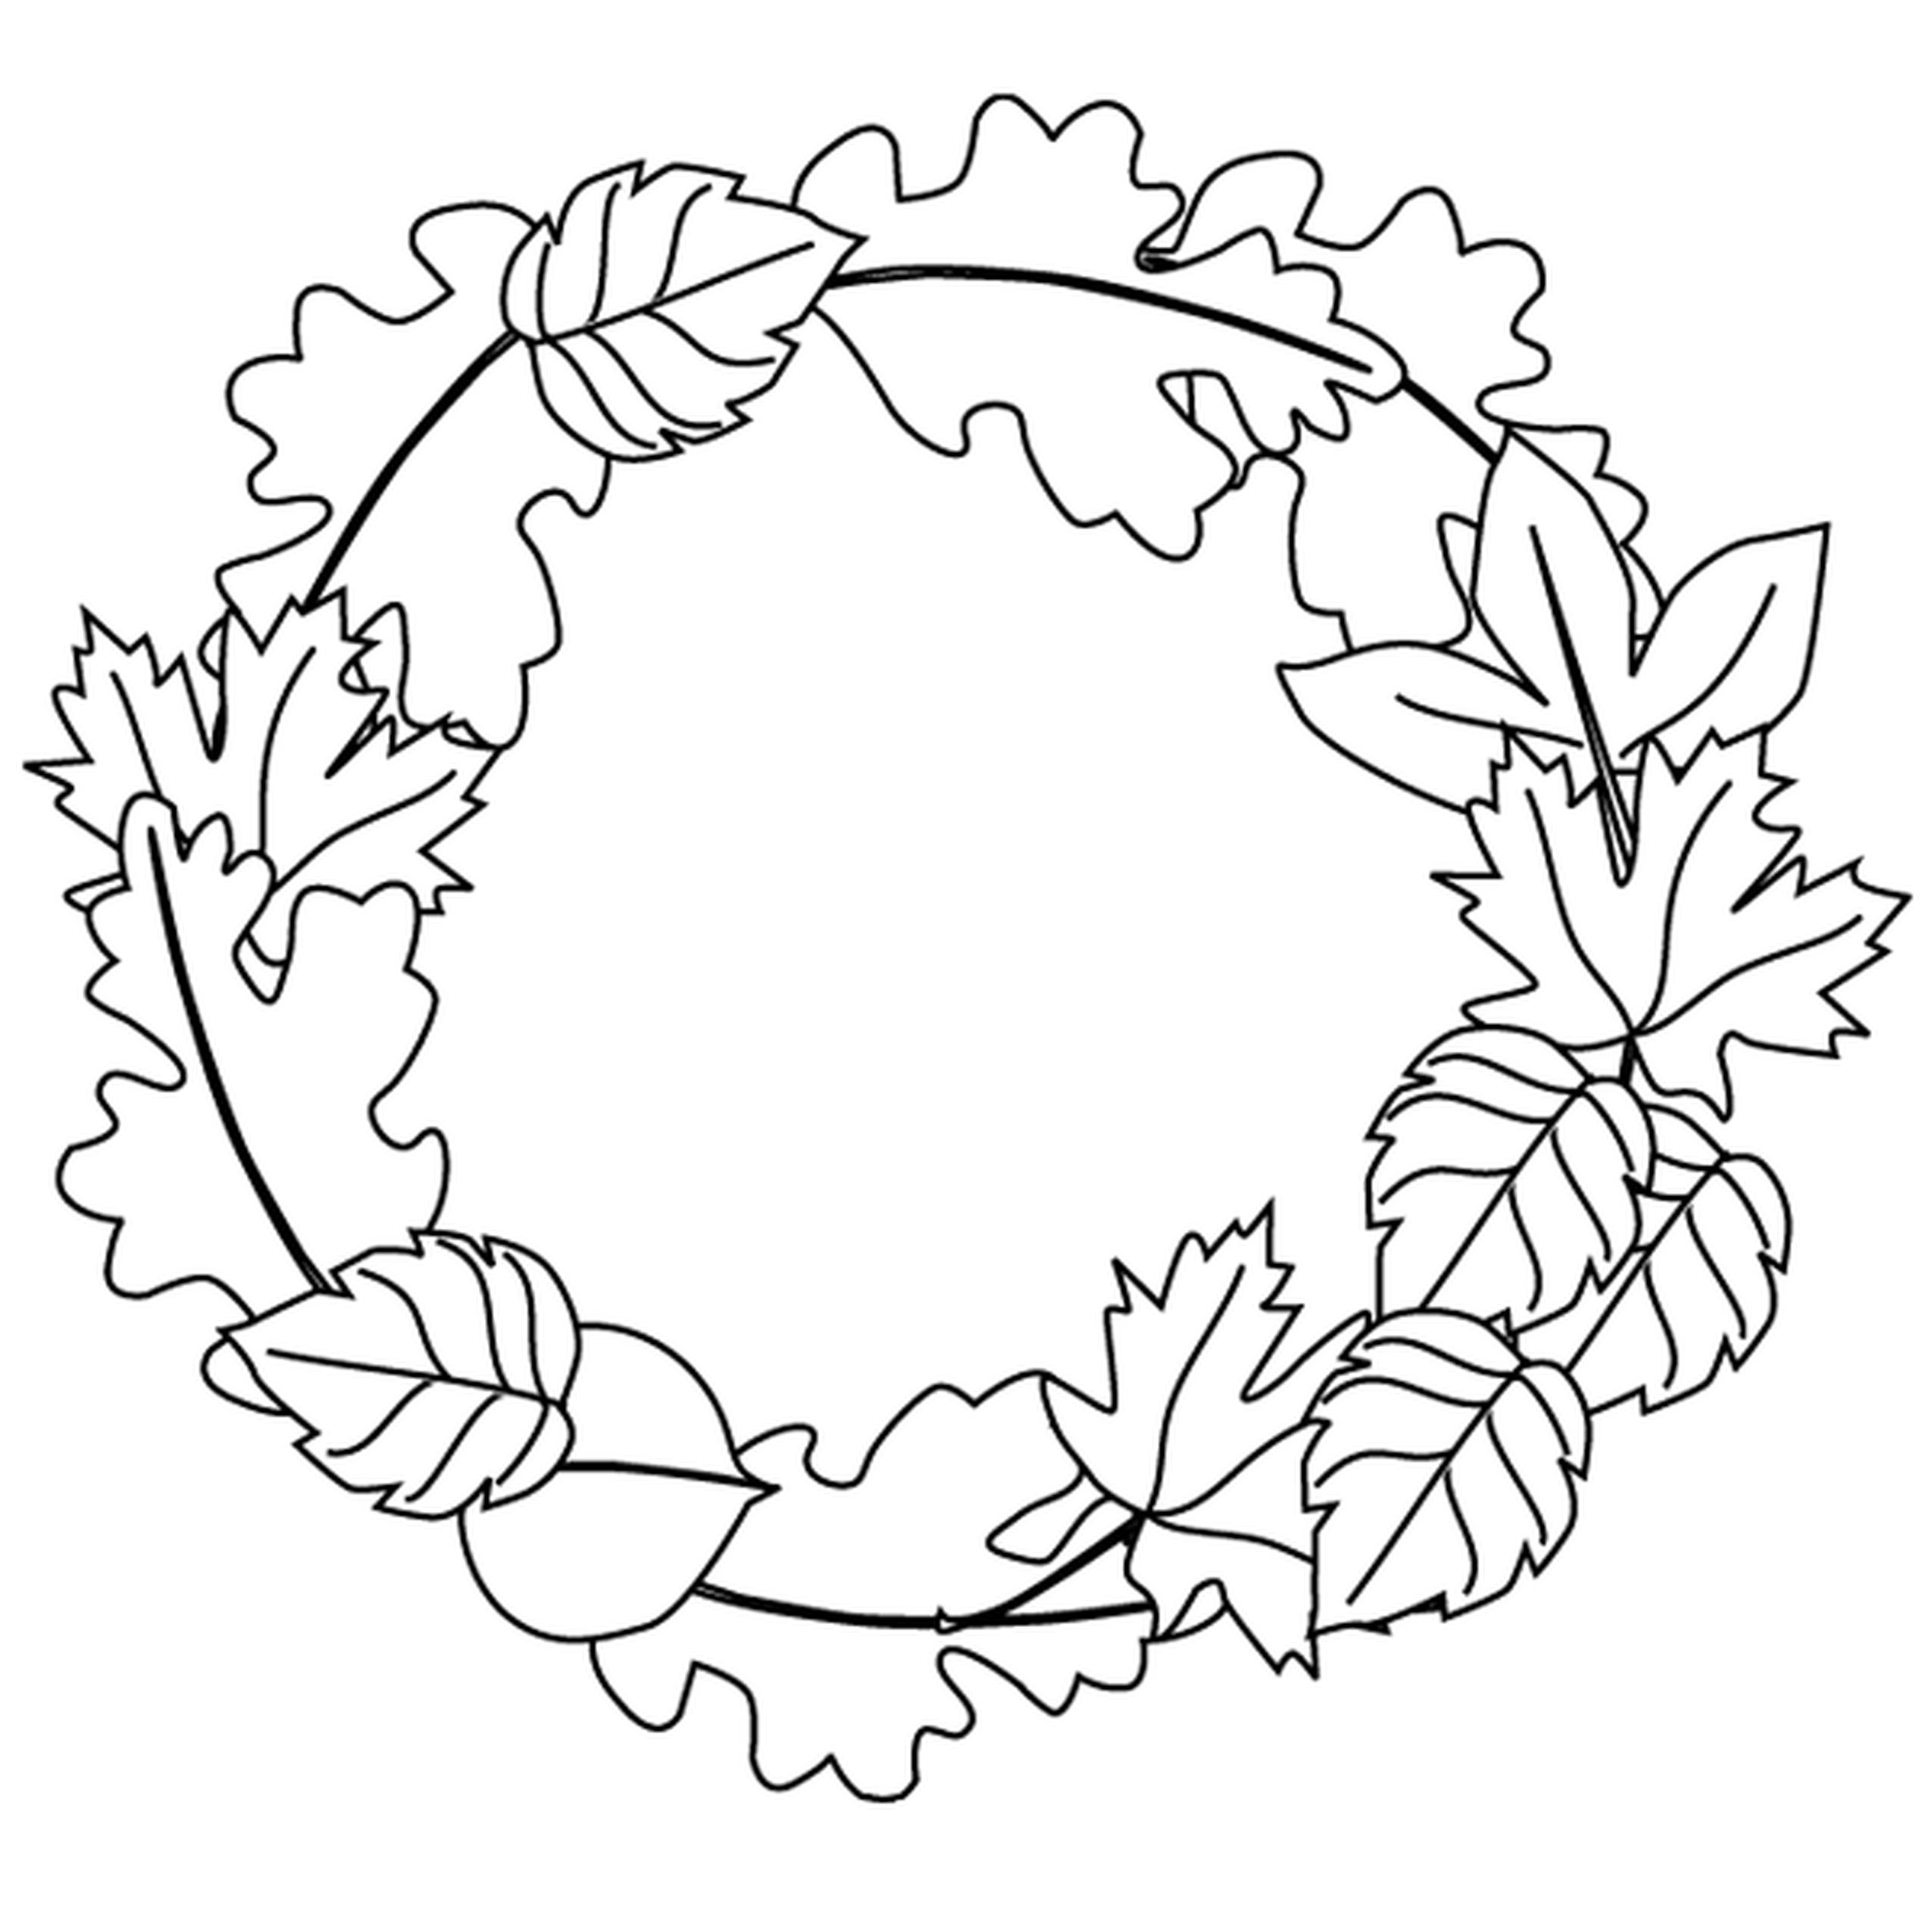 free colouring pictures autumn leaves autumn coloring pages fall topcoloringpagesnet autumn pictures free leaves colouring